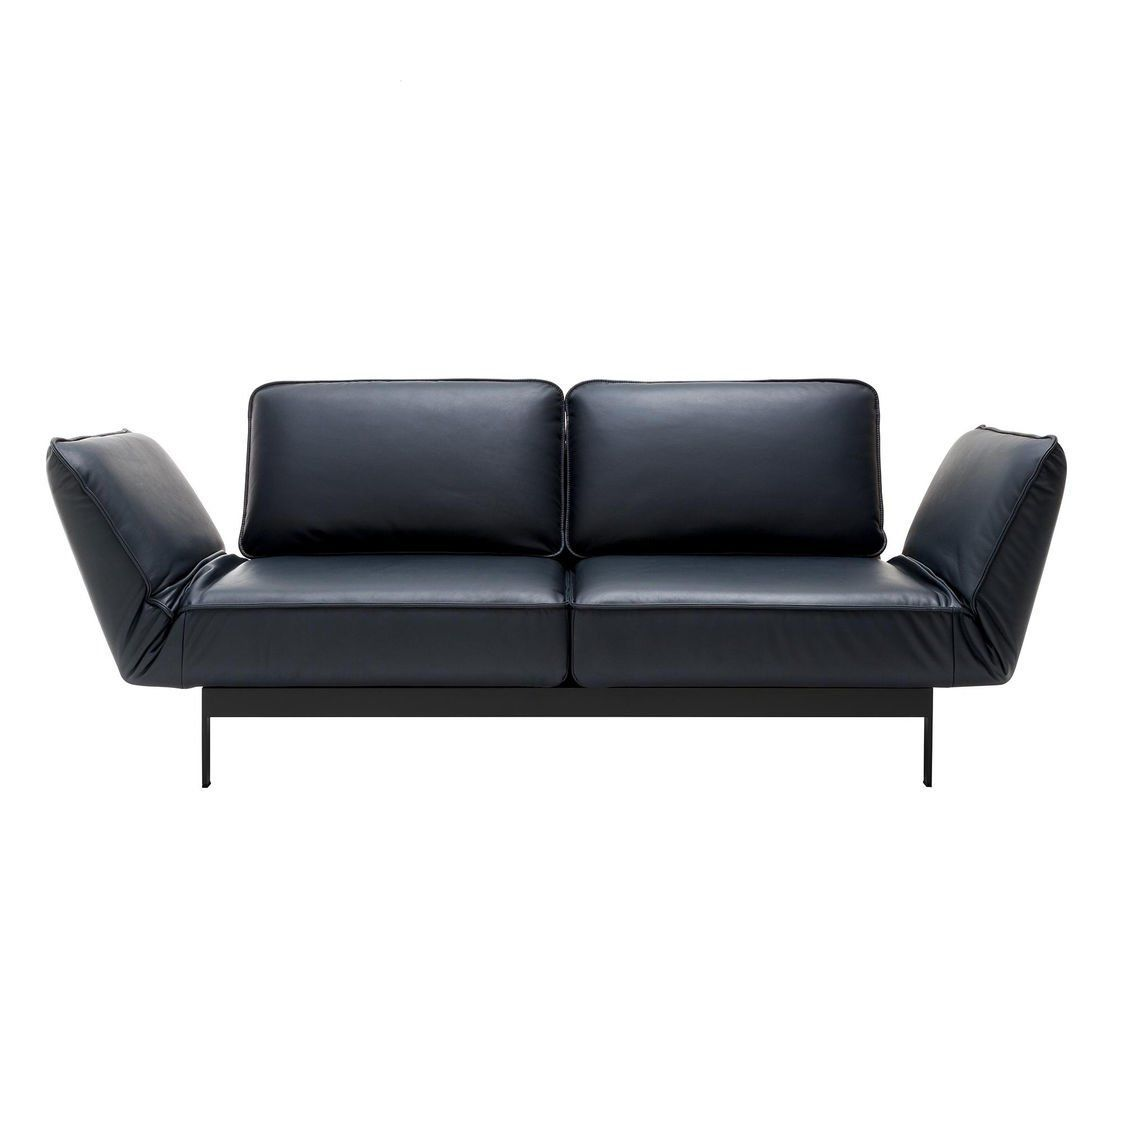 rolf benz 386 mera liegesofa ambientedirect. Black Bedroom Furniture Sets. Home Design Ideas